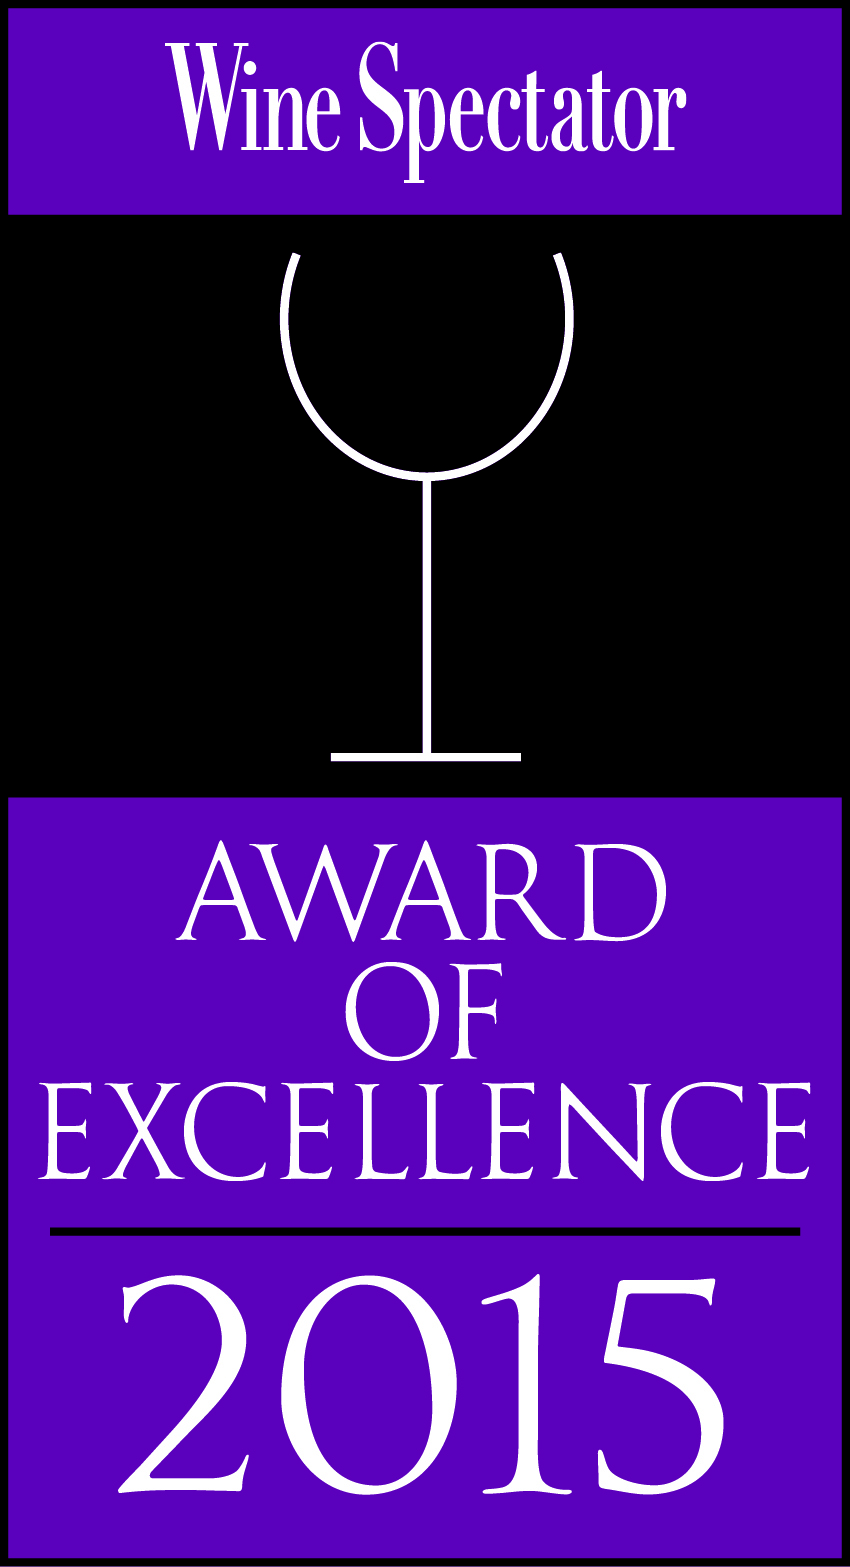 Wine Spectator Award of Excellence 2015